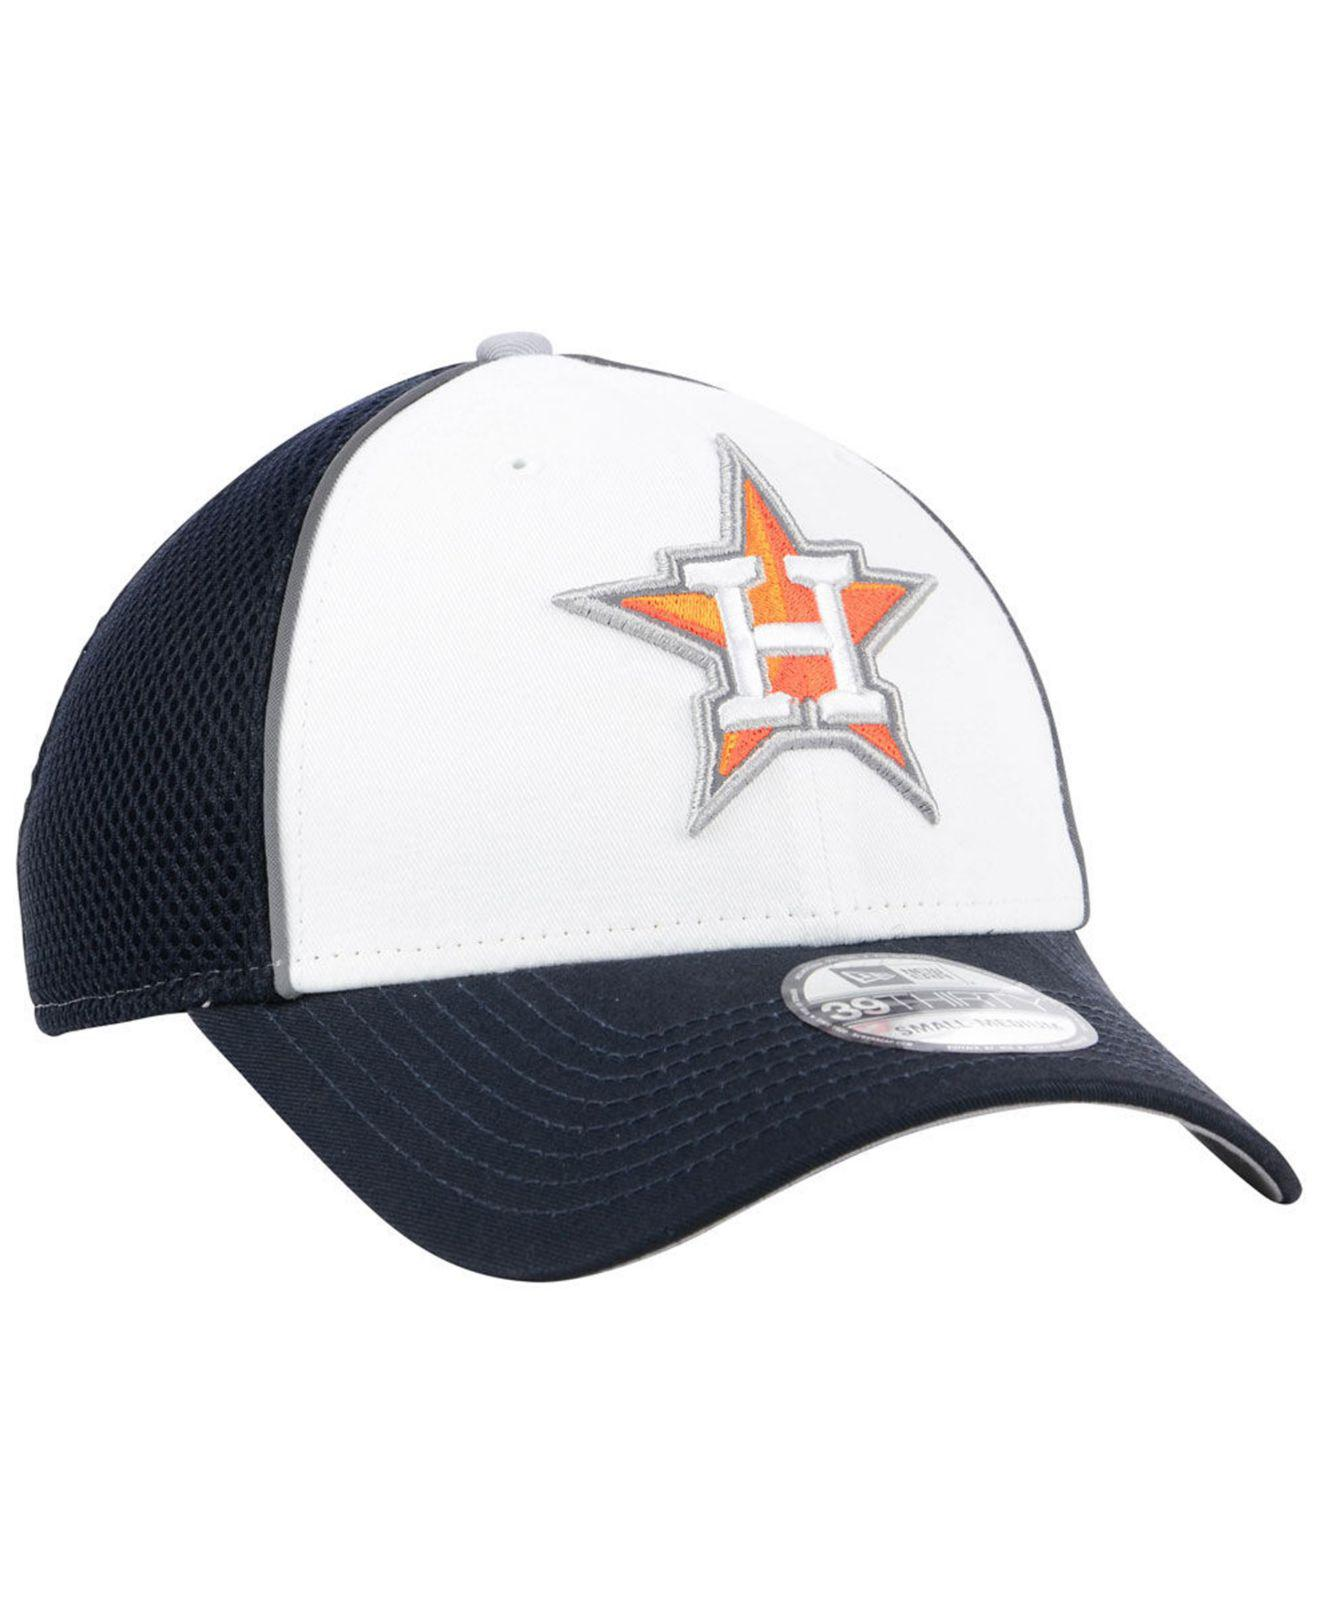 wholesale dealer c7430 50bc6 ... italy lyst ktz houston astros pop reflective 39thirty cap in blue for  men 1a799 f2e8f